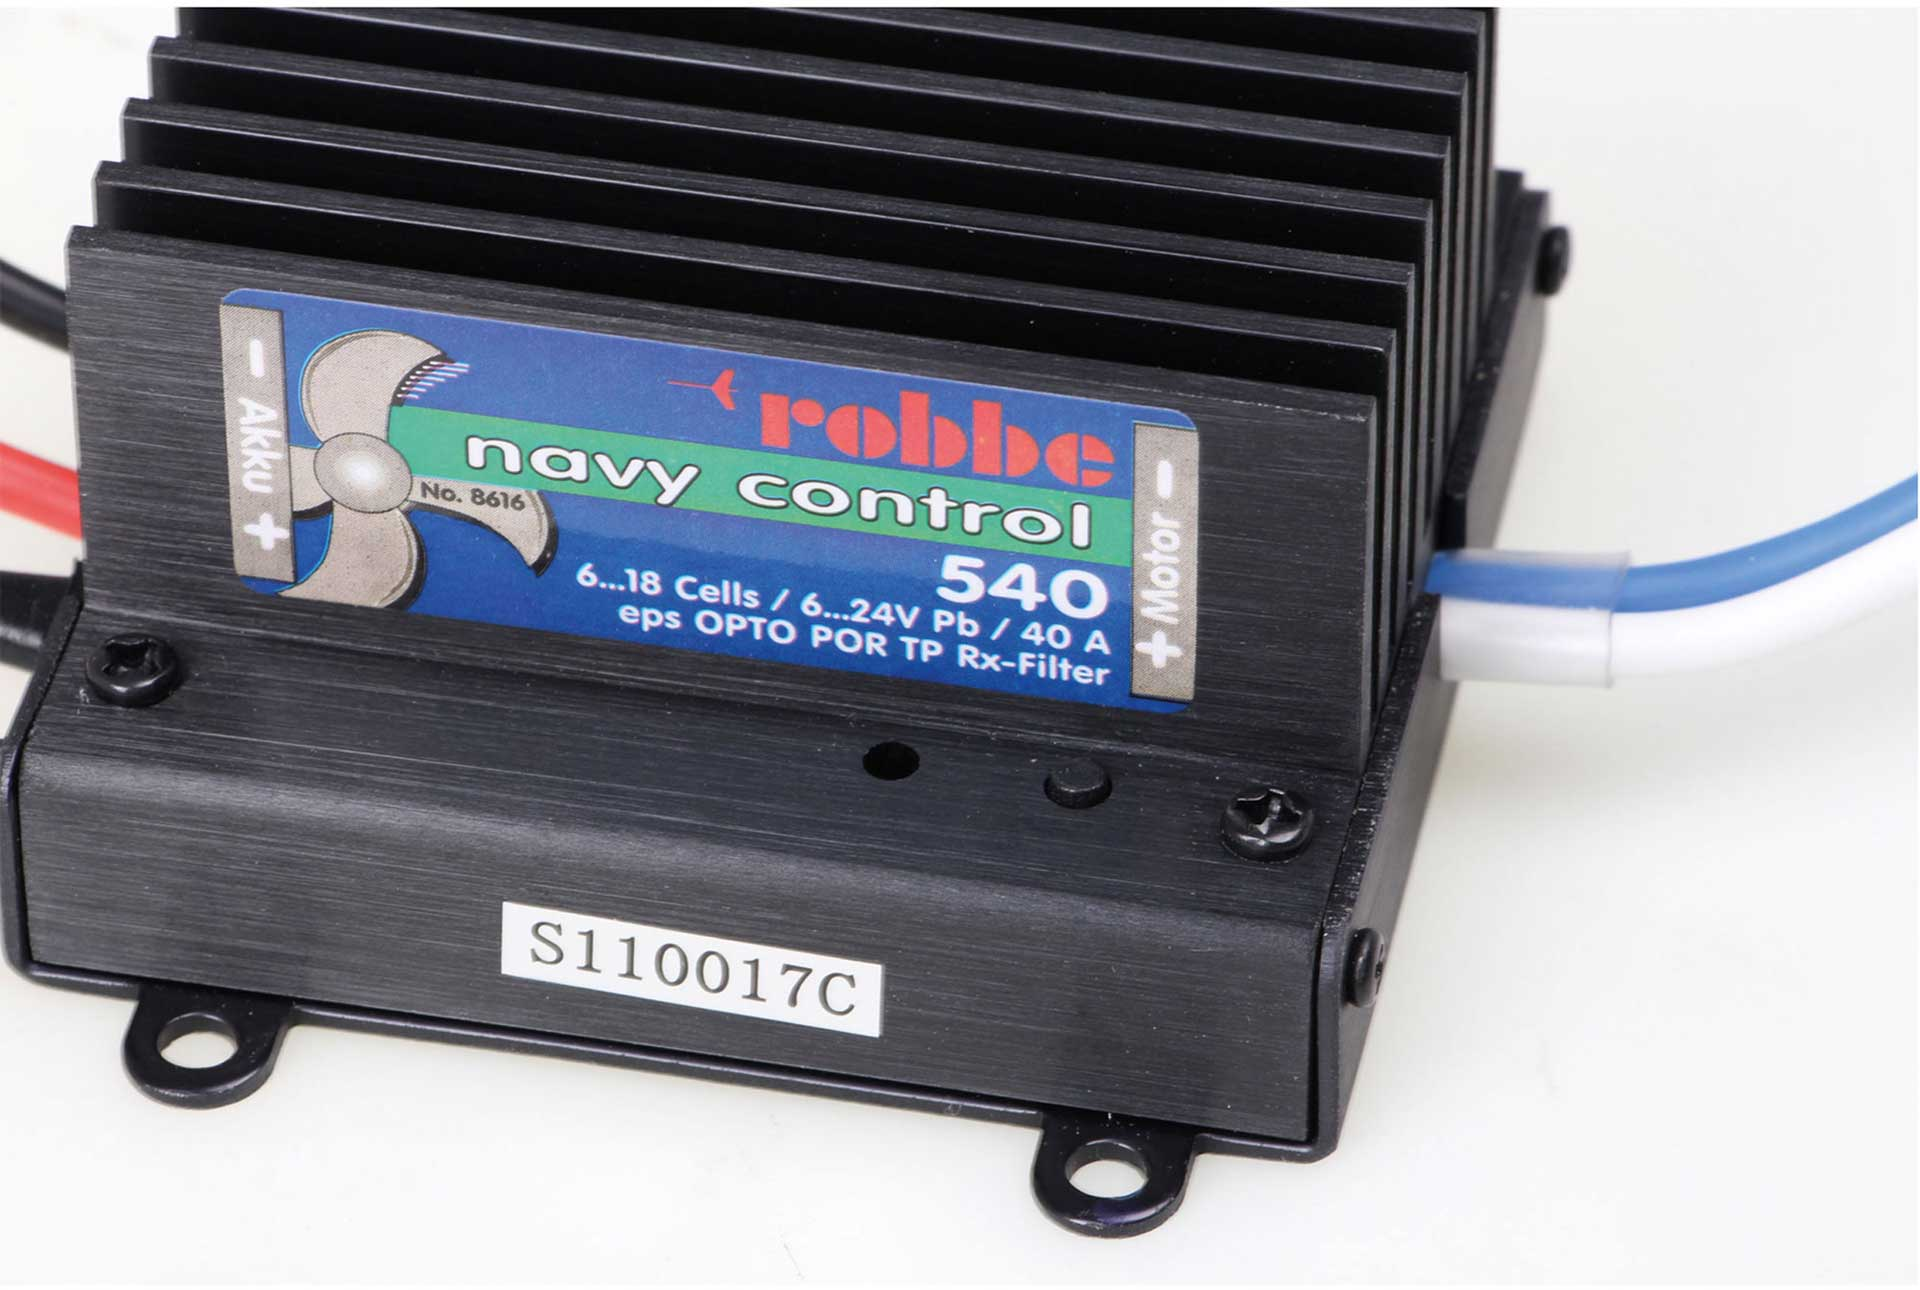 ROBBE NAVY CONTROL 540 R